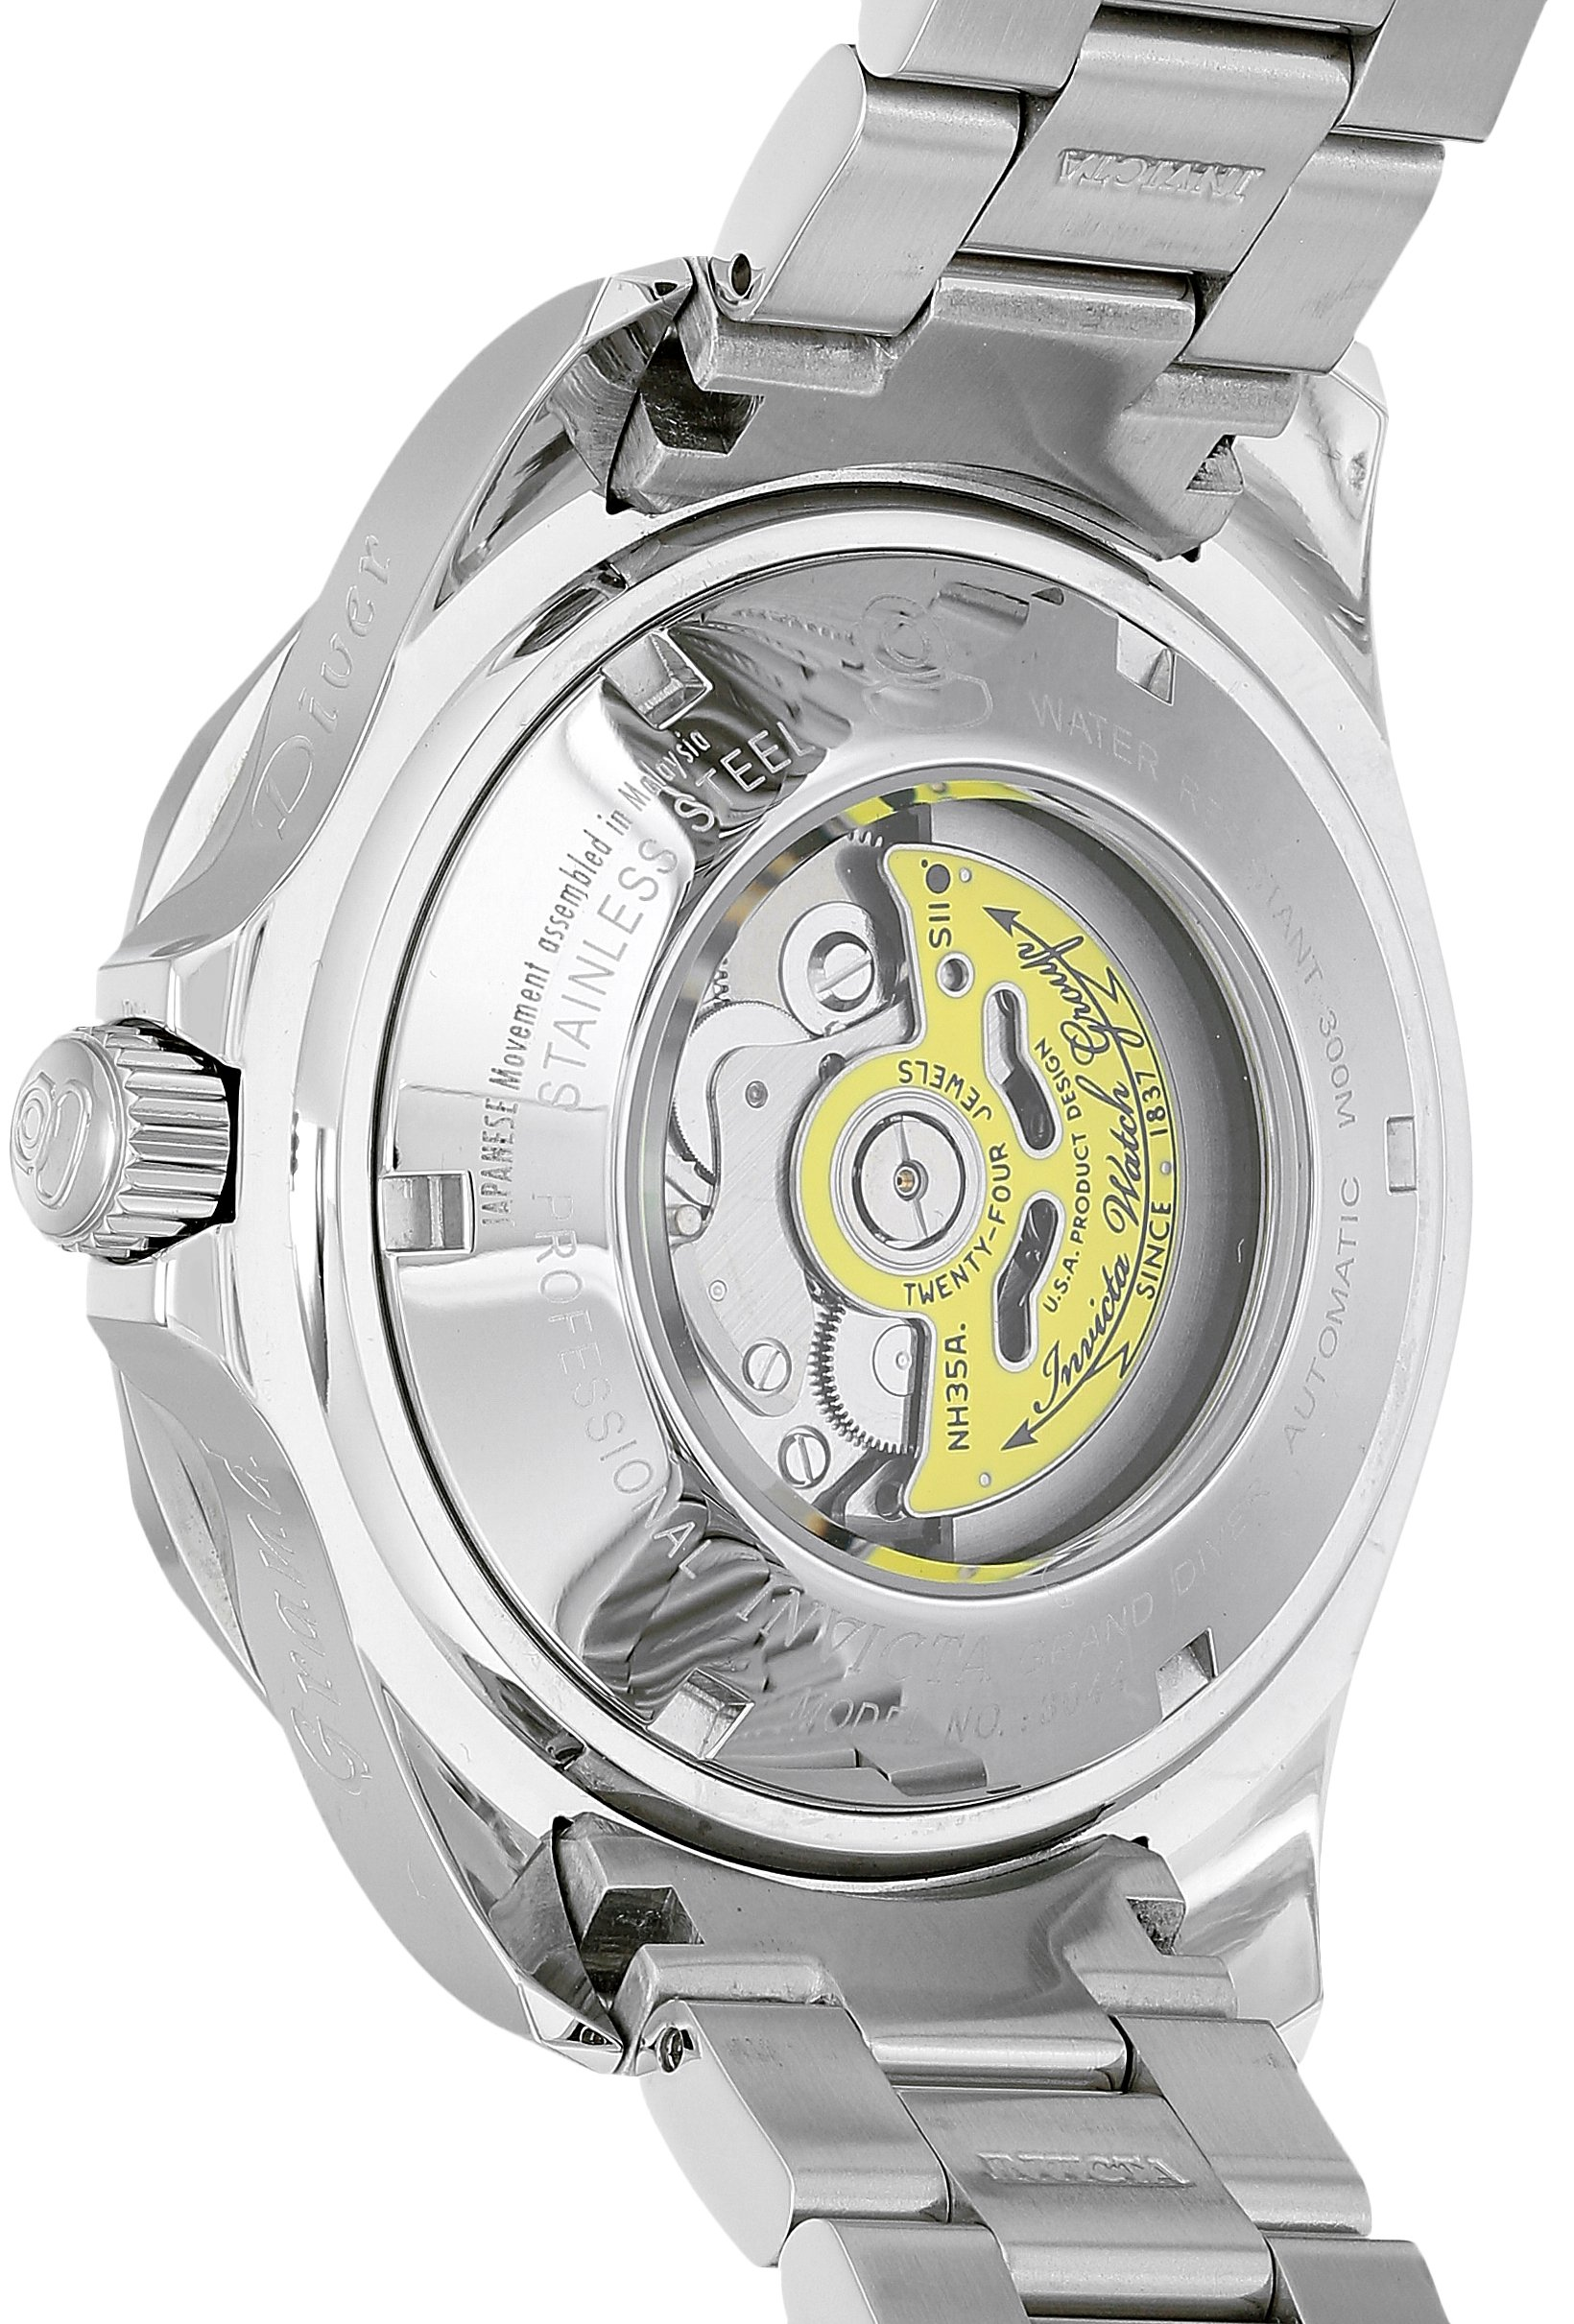 Invicta Men's 3044 Stainless Steel Grand Diver Automatic Watch, Silver/Black by Invicta (Image #2)